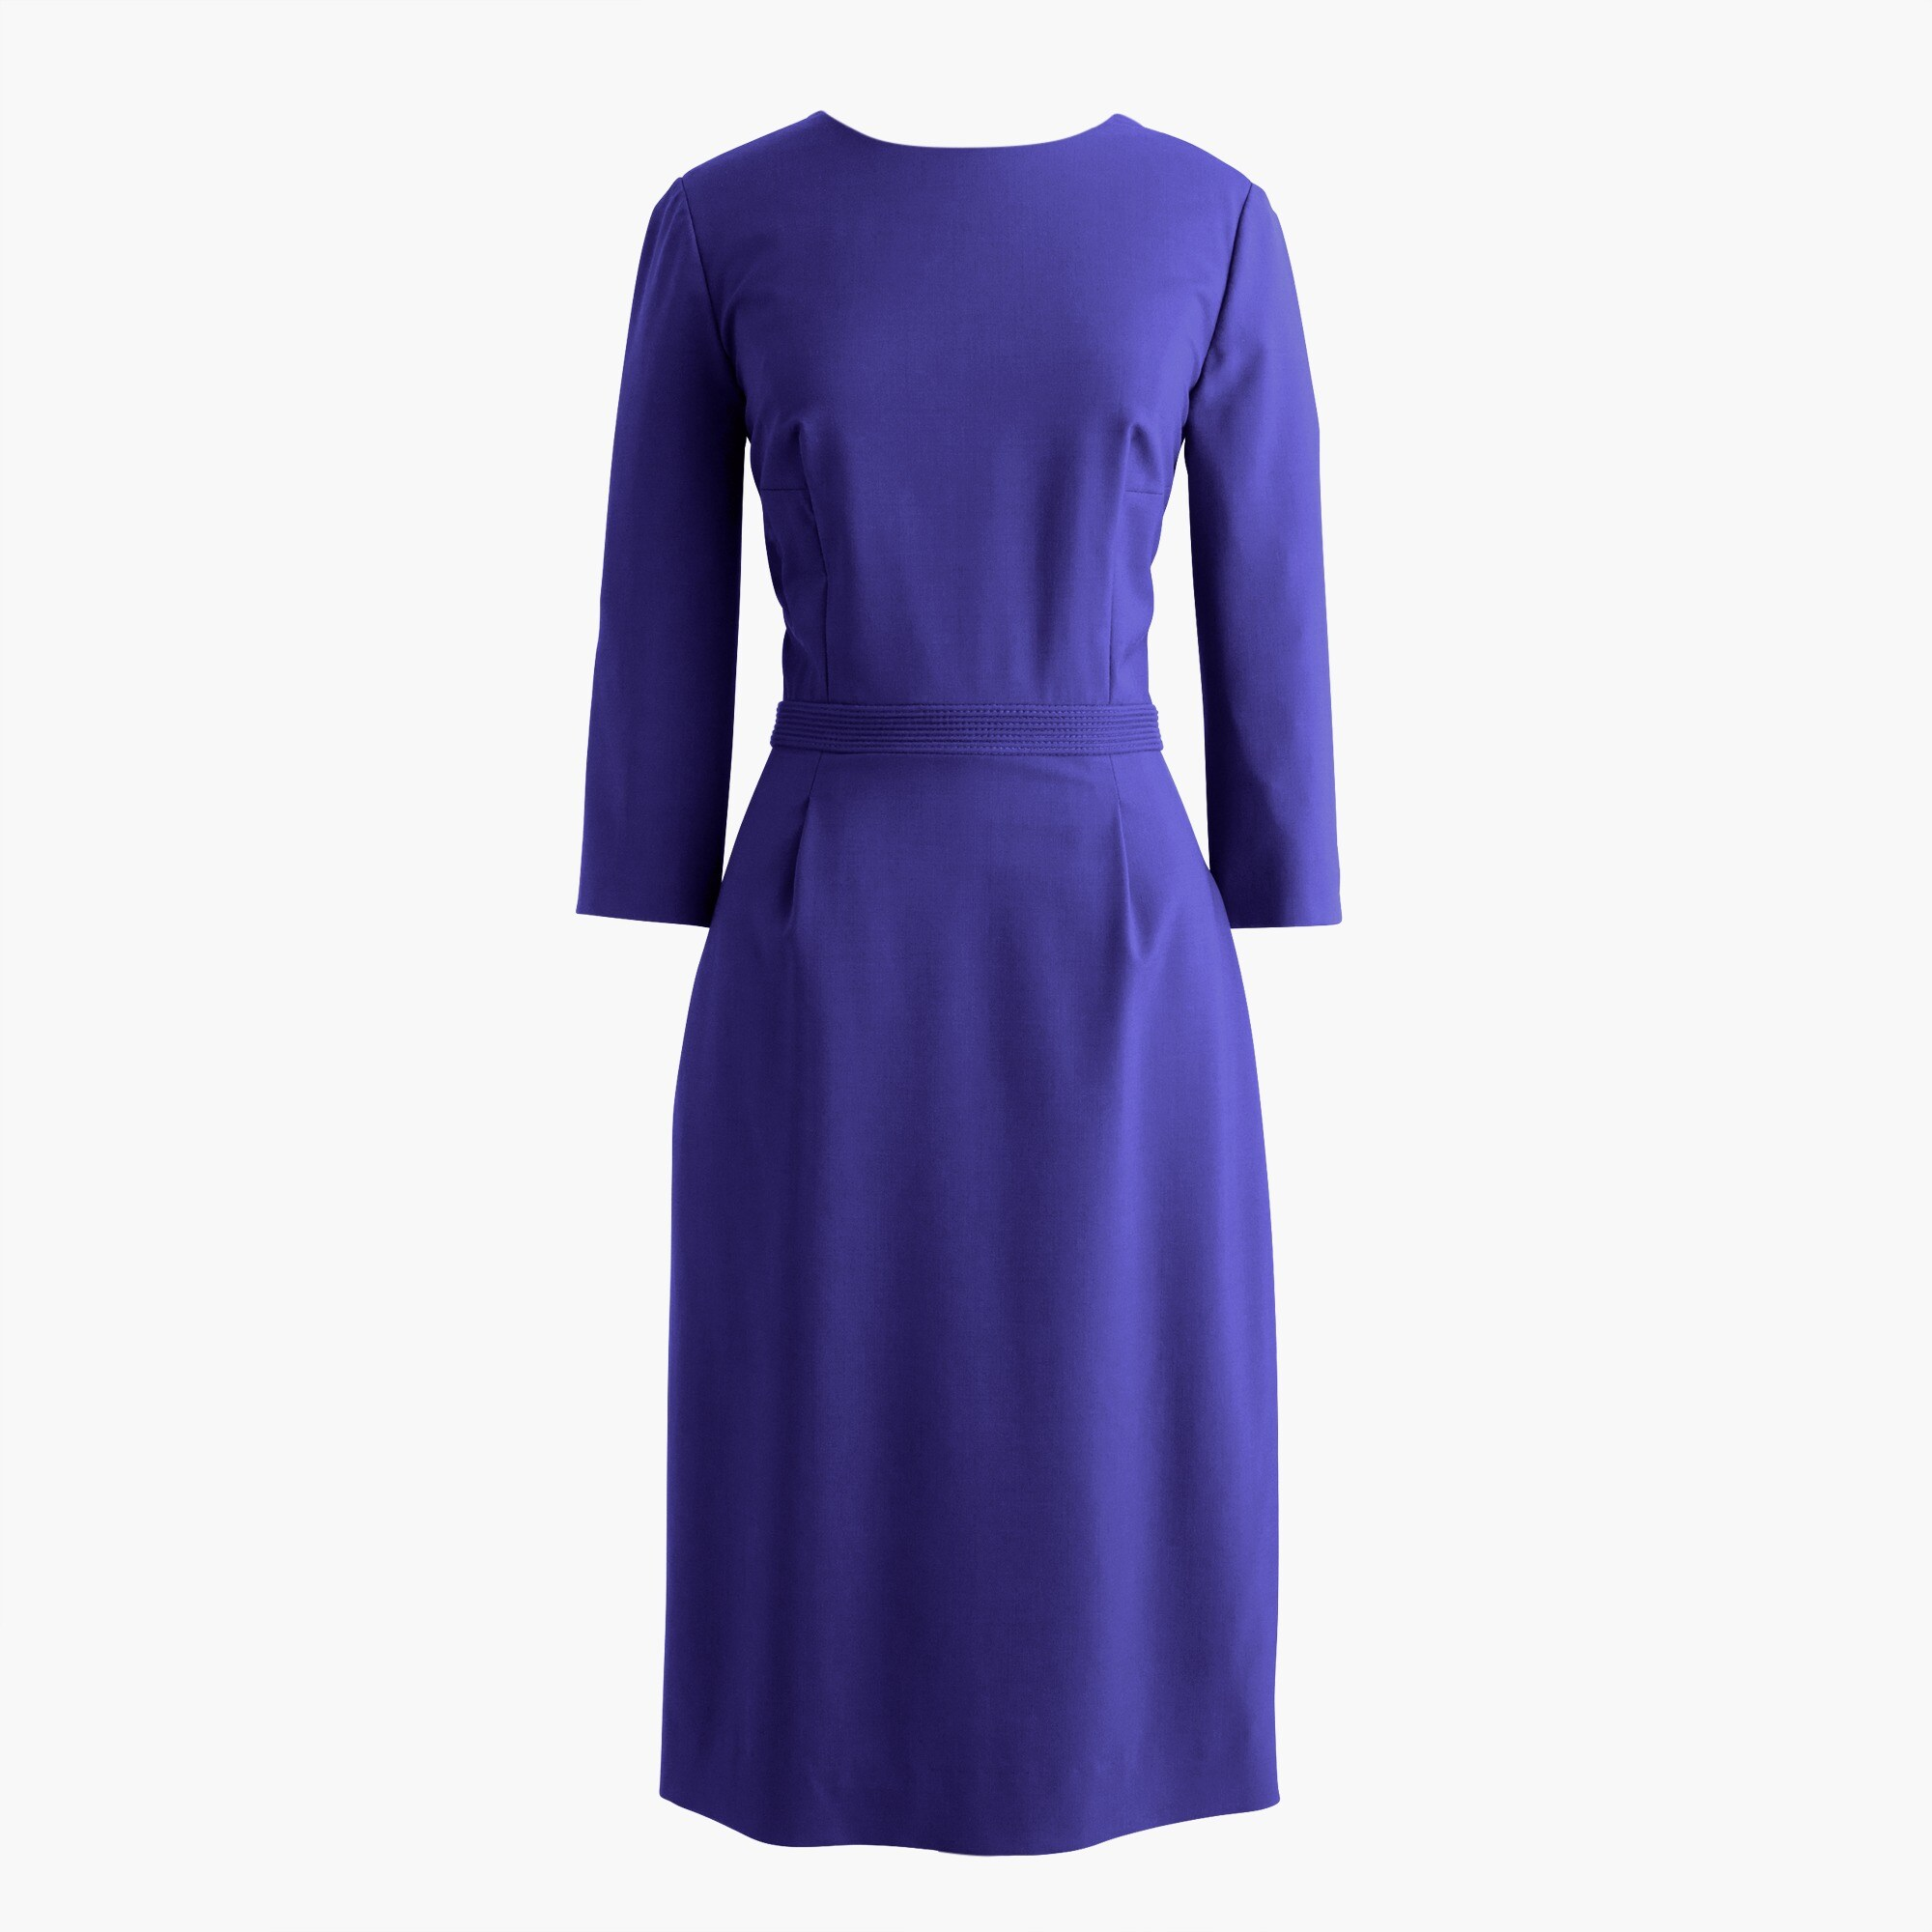 Petite bracelet-sleeve dress in Italian stretch wool